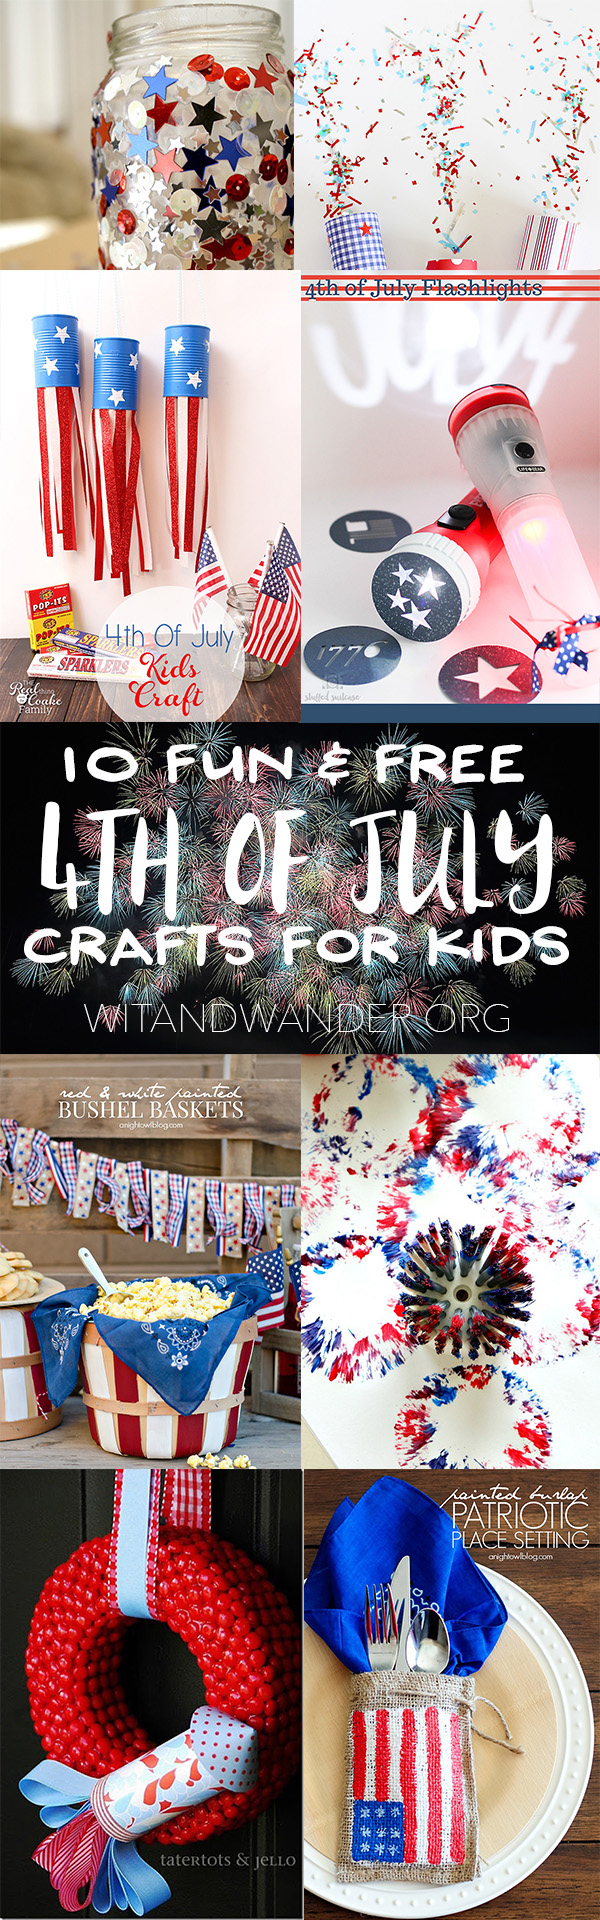 10 Fun And Free 4th Of July Crafts For Kids Our Handcrafted Life